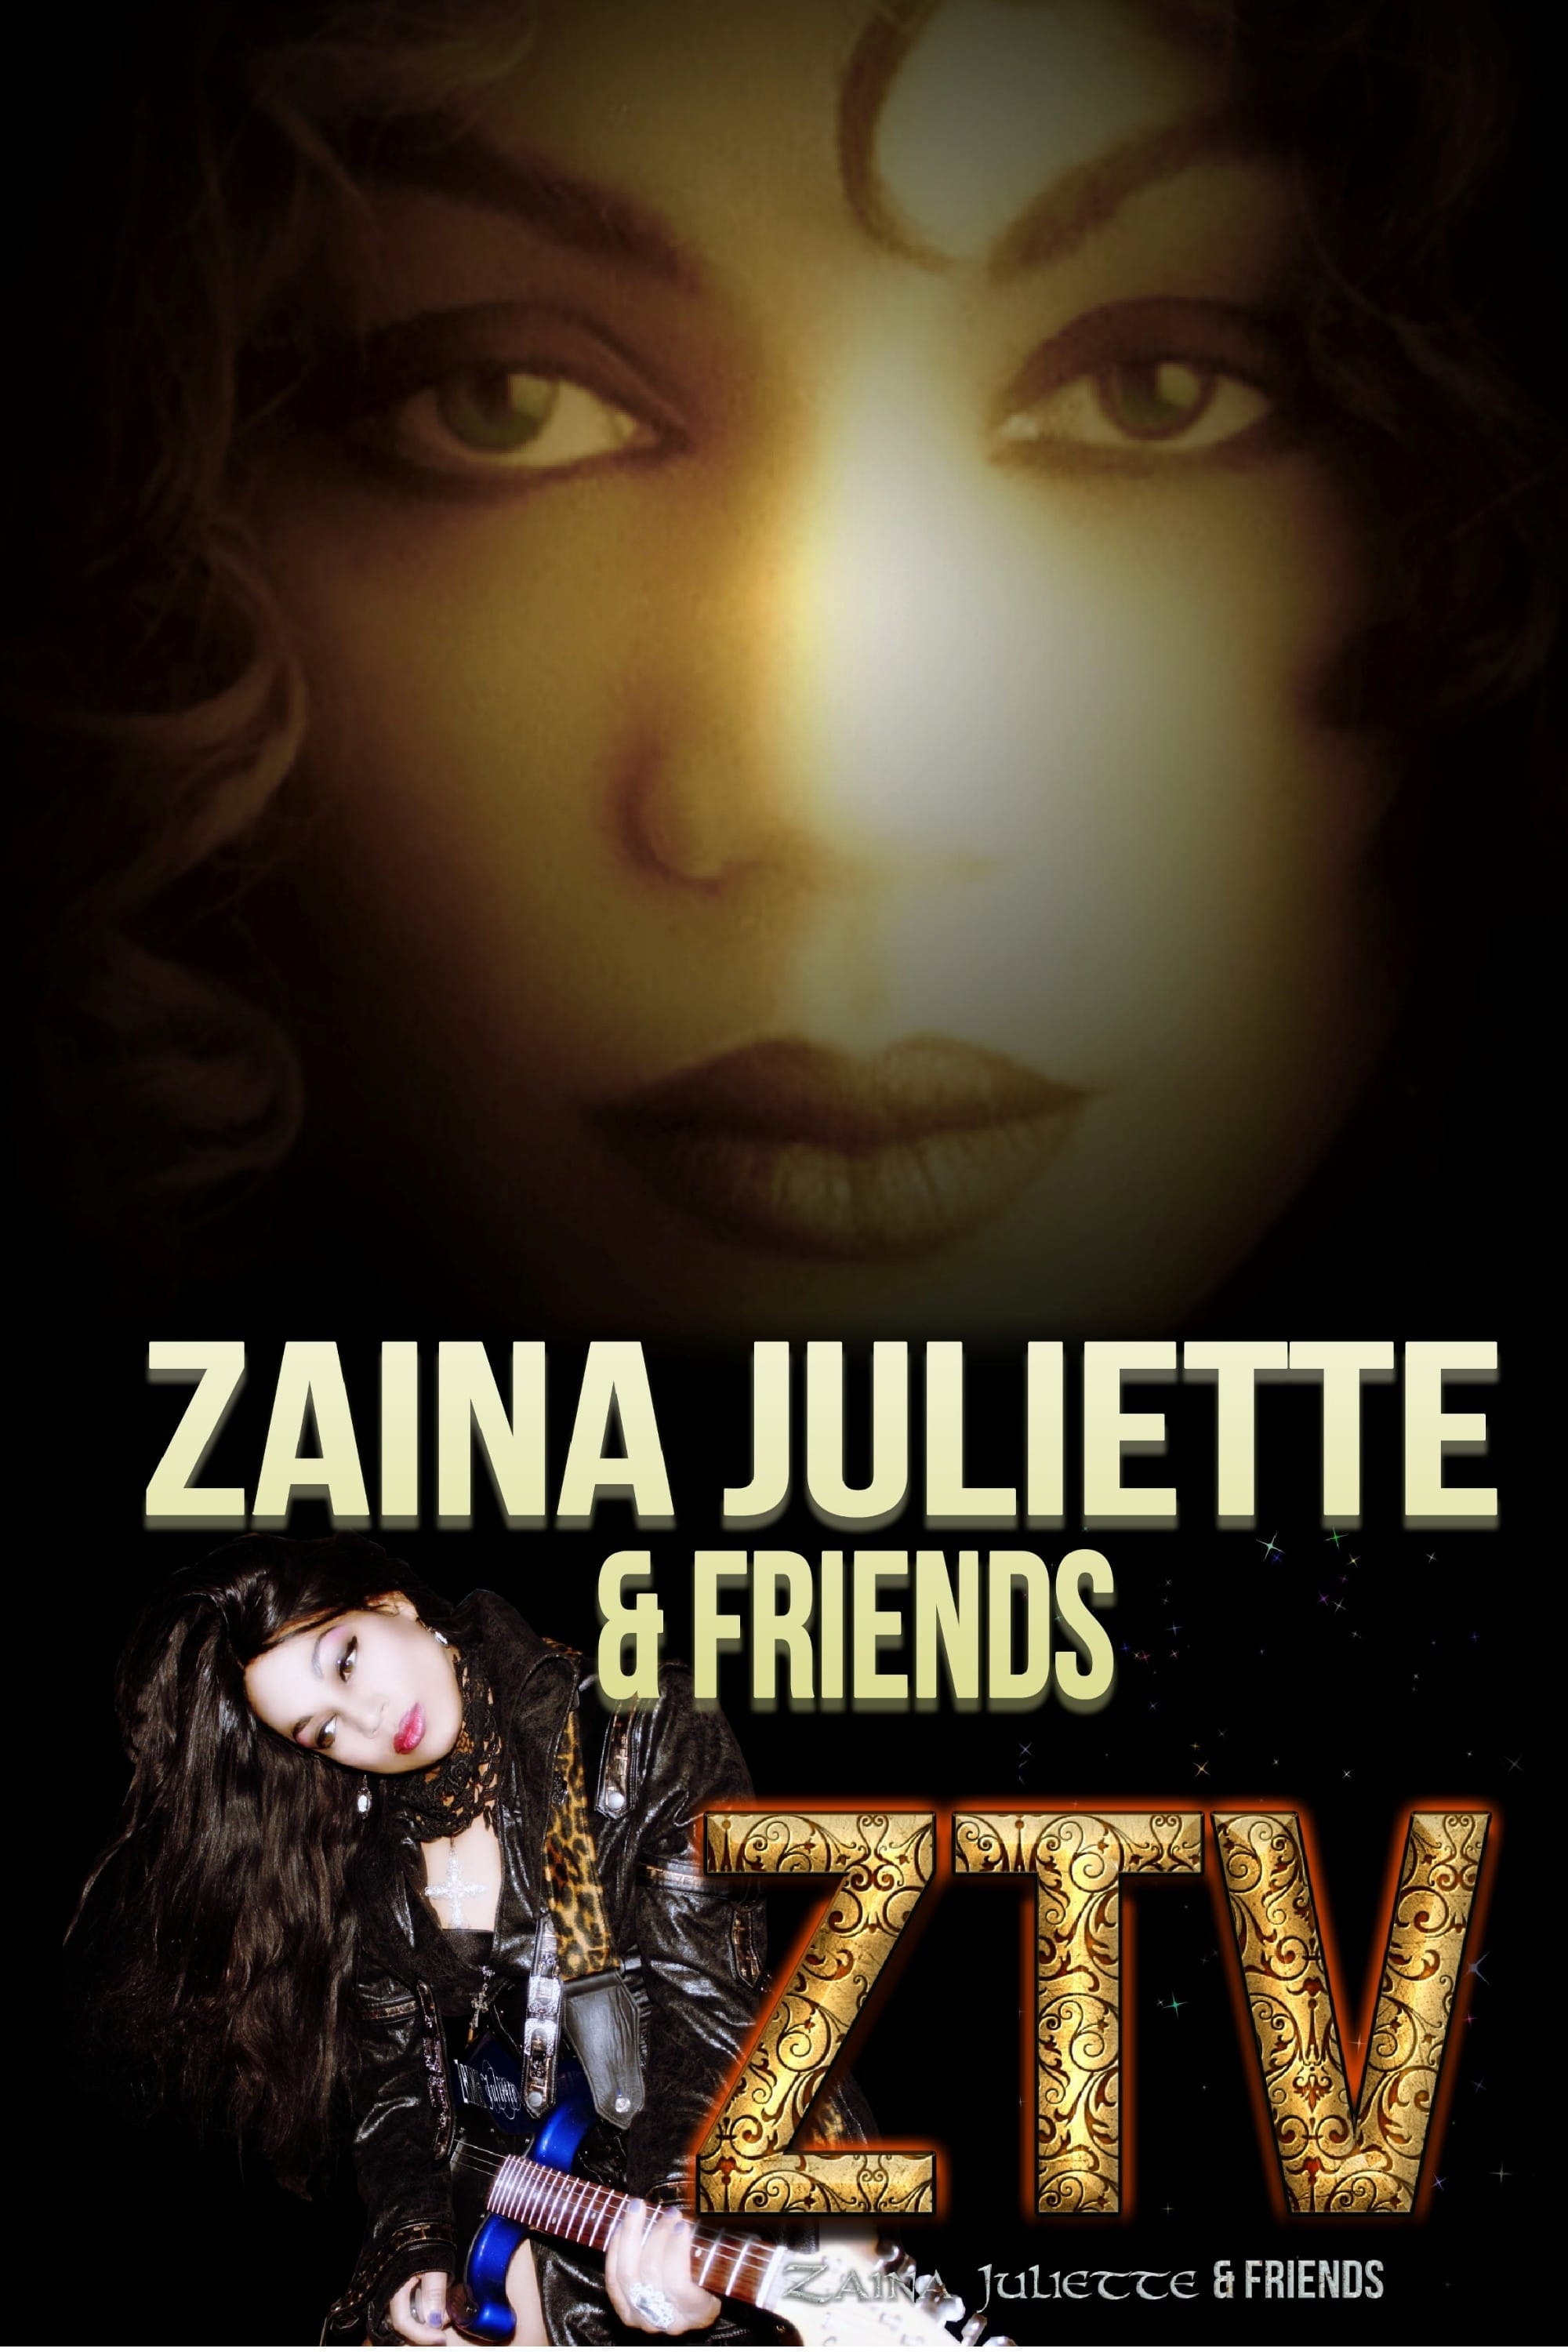 Zaina Juliette & Friends (2017)